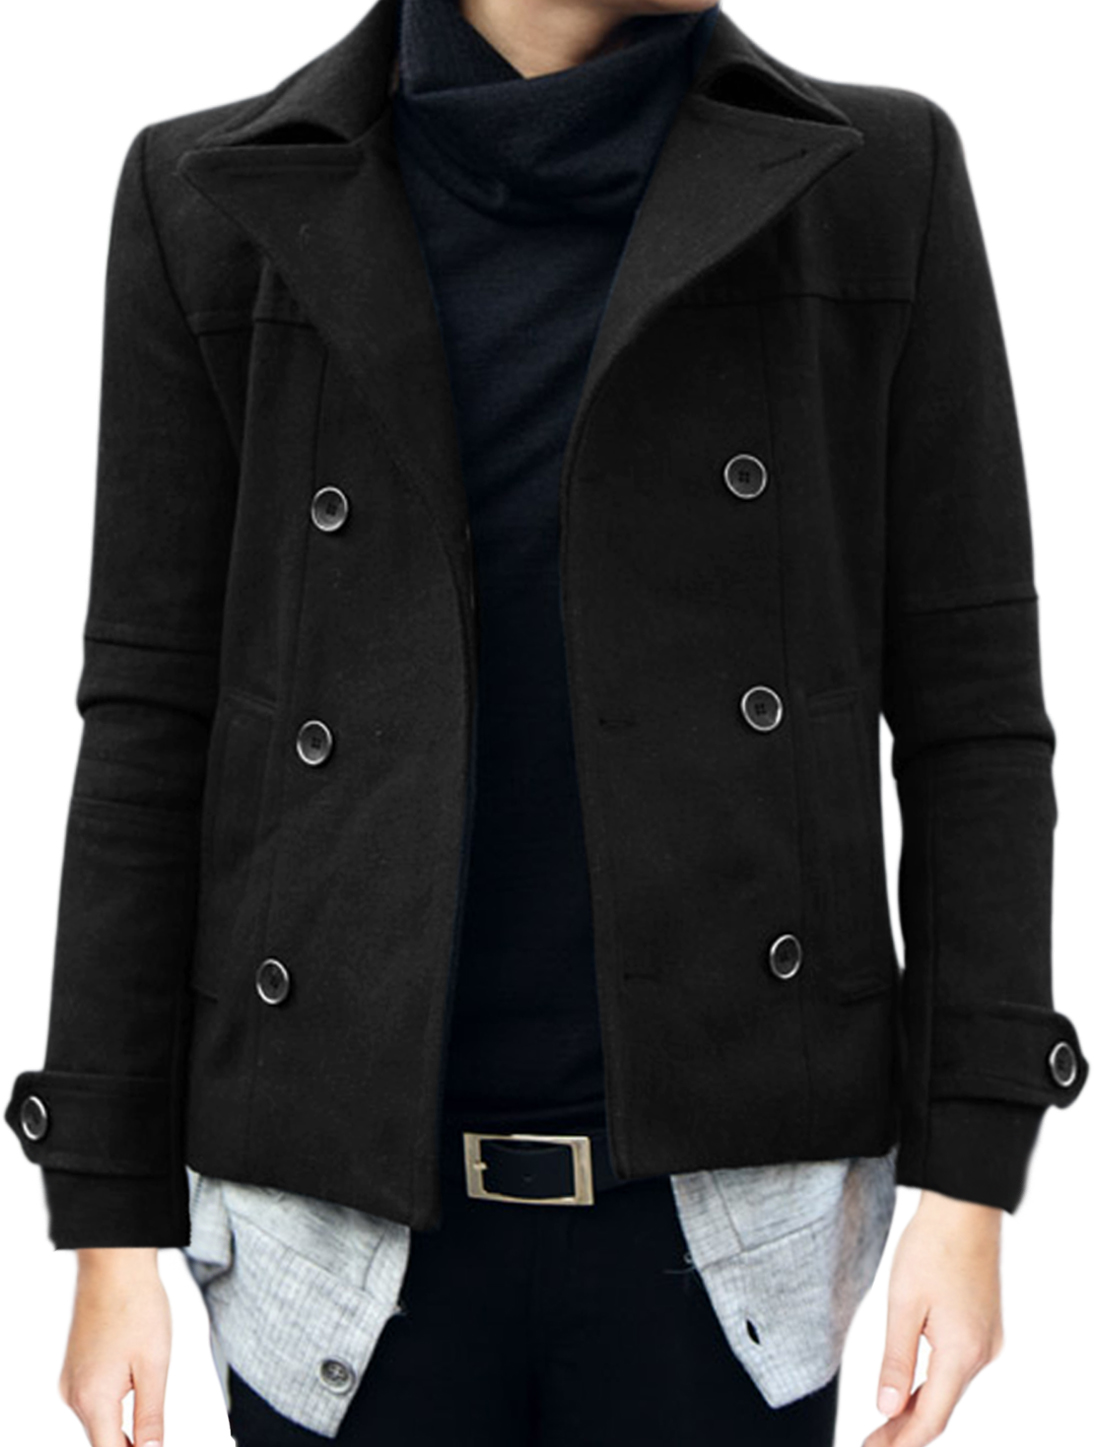 Men Single Breasted Buttons Decor Front Slant Pockets Peacoat Black M